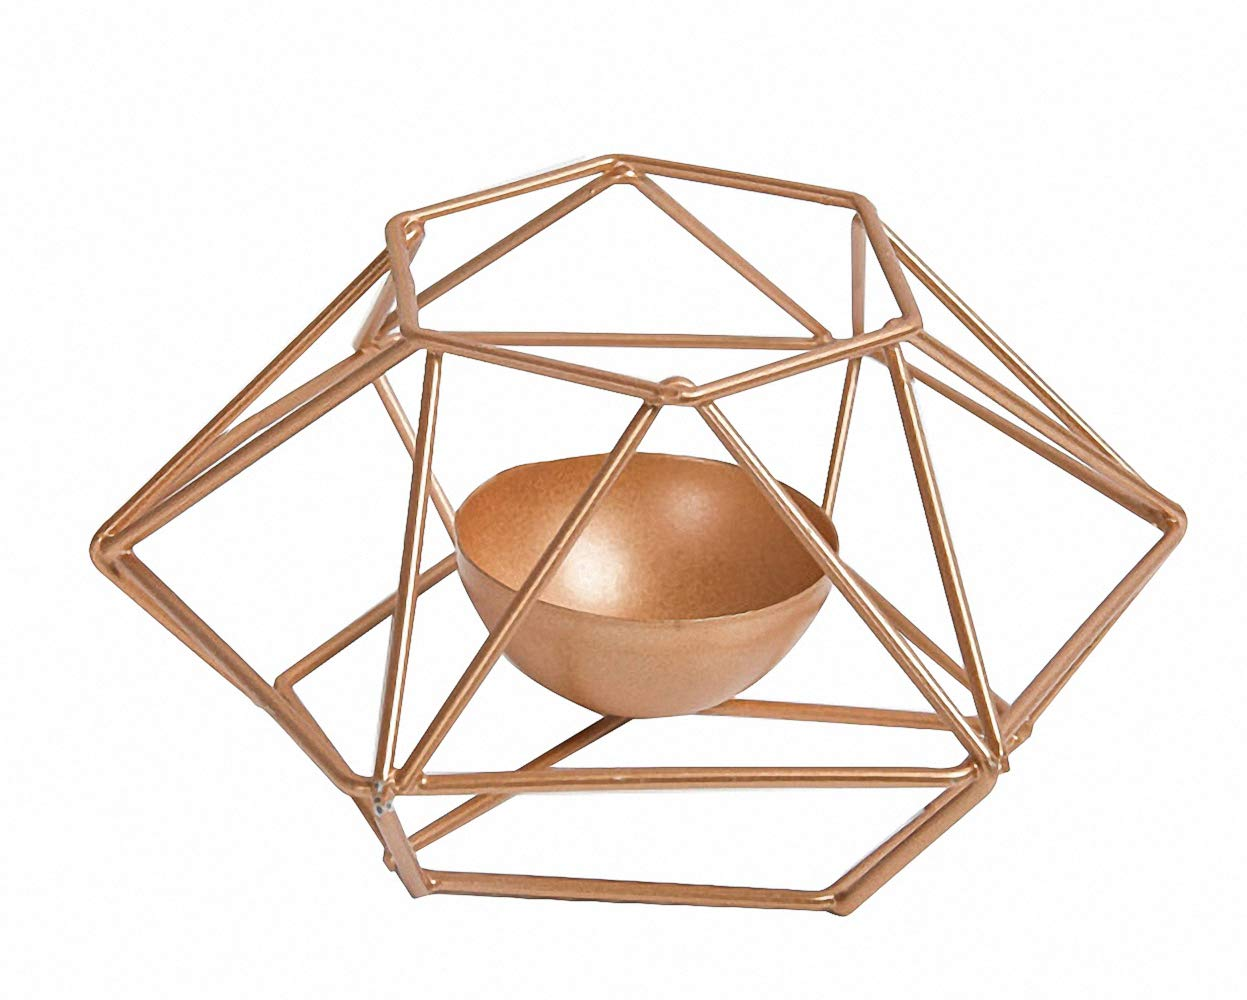 Nordic Gold Modern Design Iron Bowl Candleholers Geometric Candle Lantern Holders Simplified Minimal Design for Modern Wedding Party Coffee Table Decorative Centerpiece House Gifts Home Decoration by Vinee